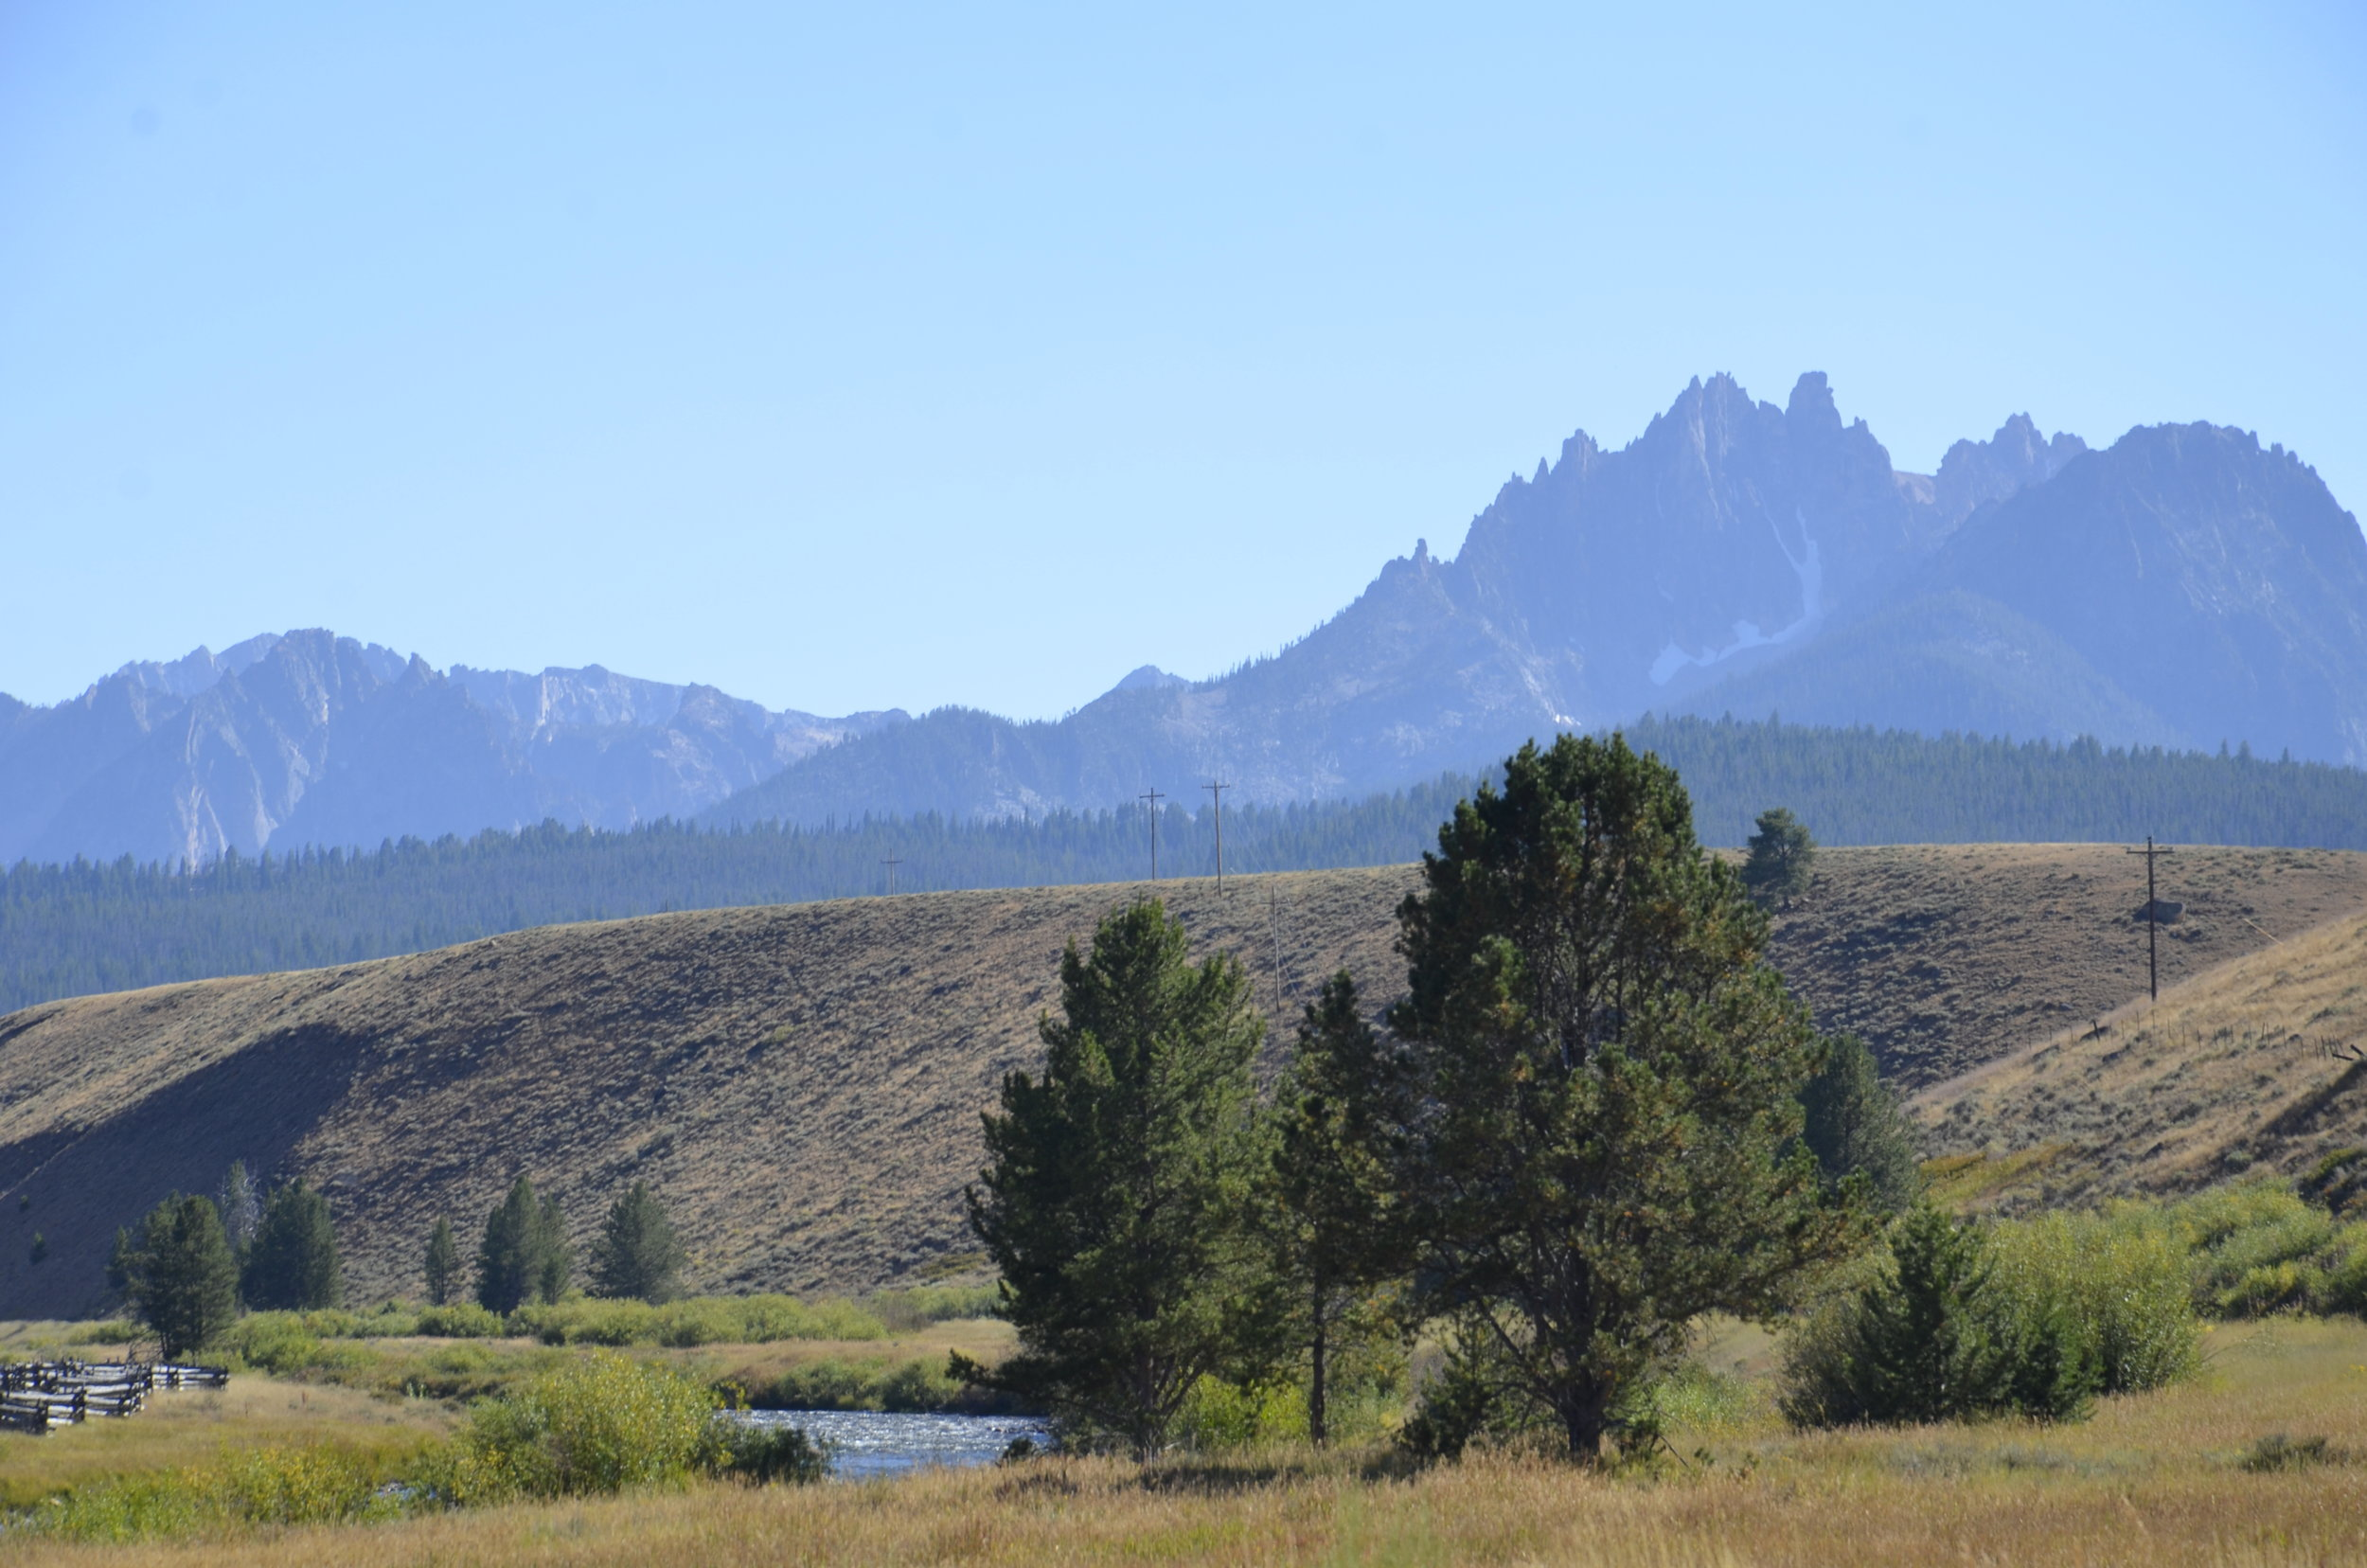 You can see why they're called the Sawtooth Mountains.